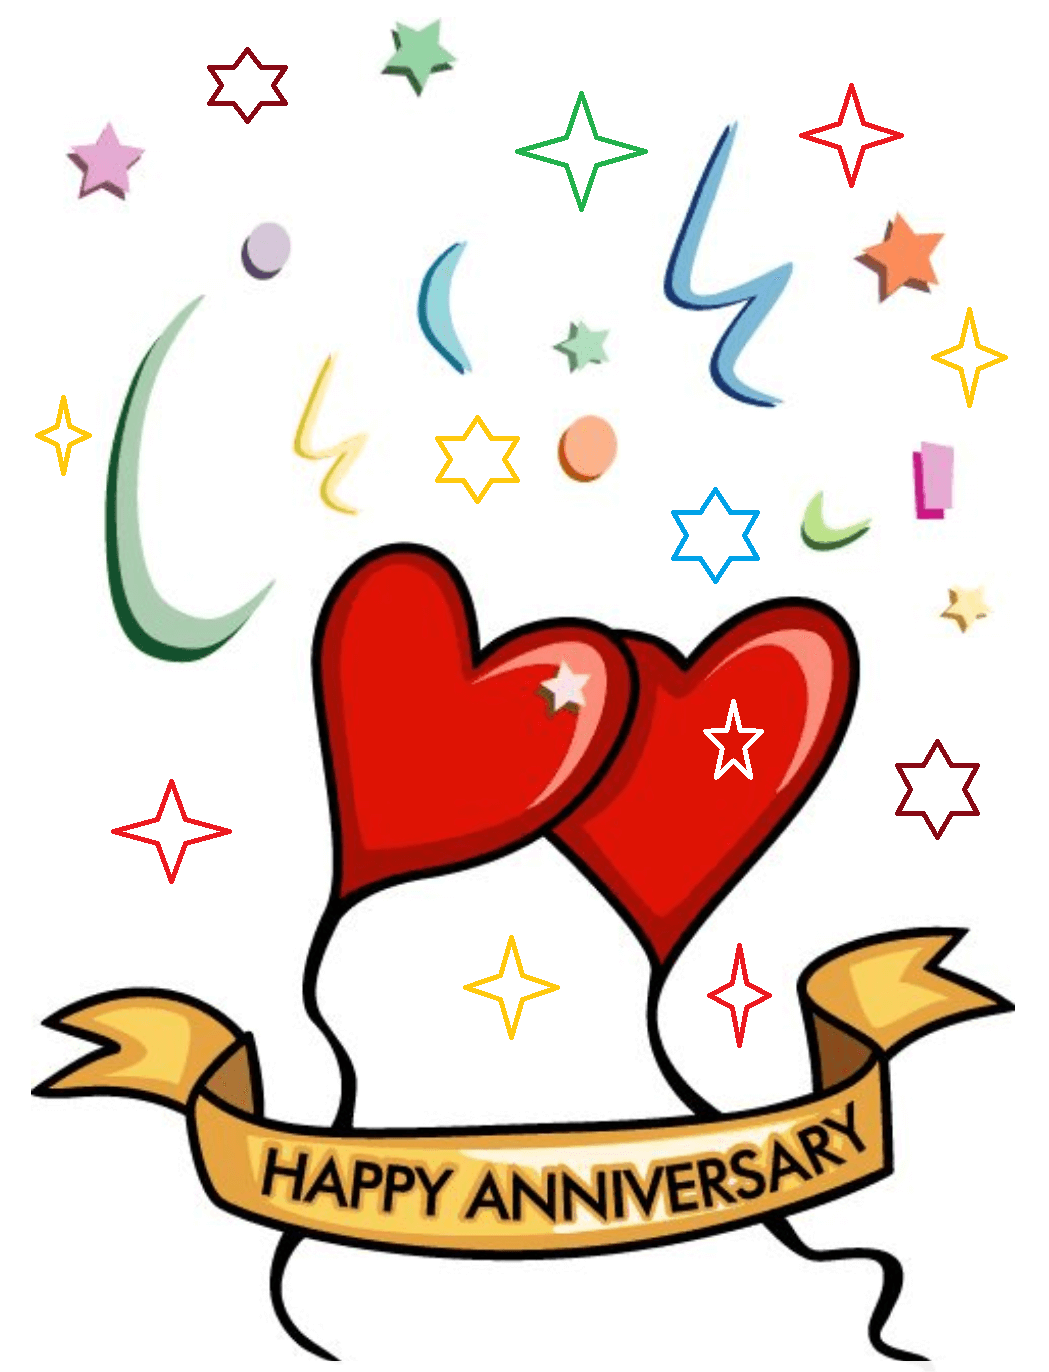 Anniversary clipart. Images free wedding